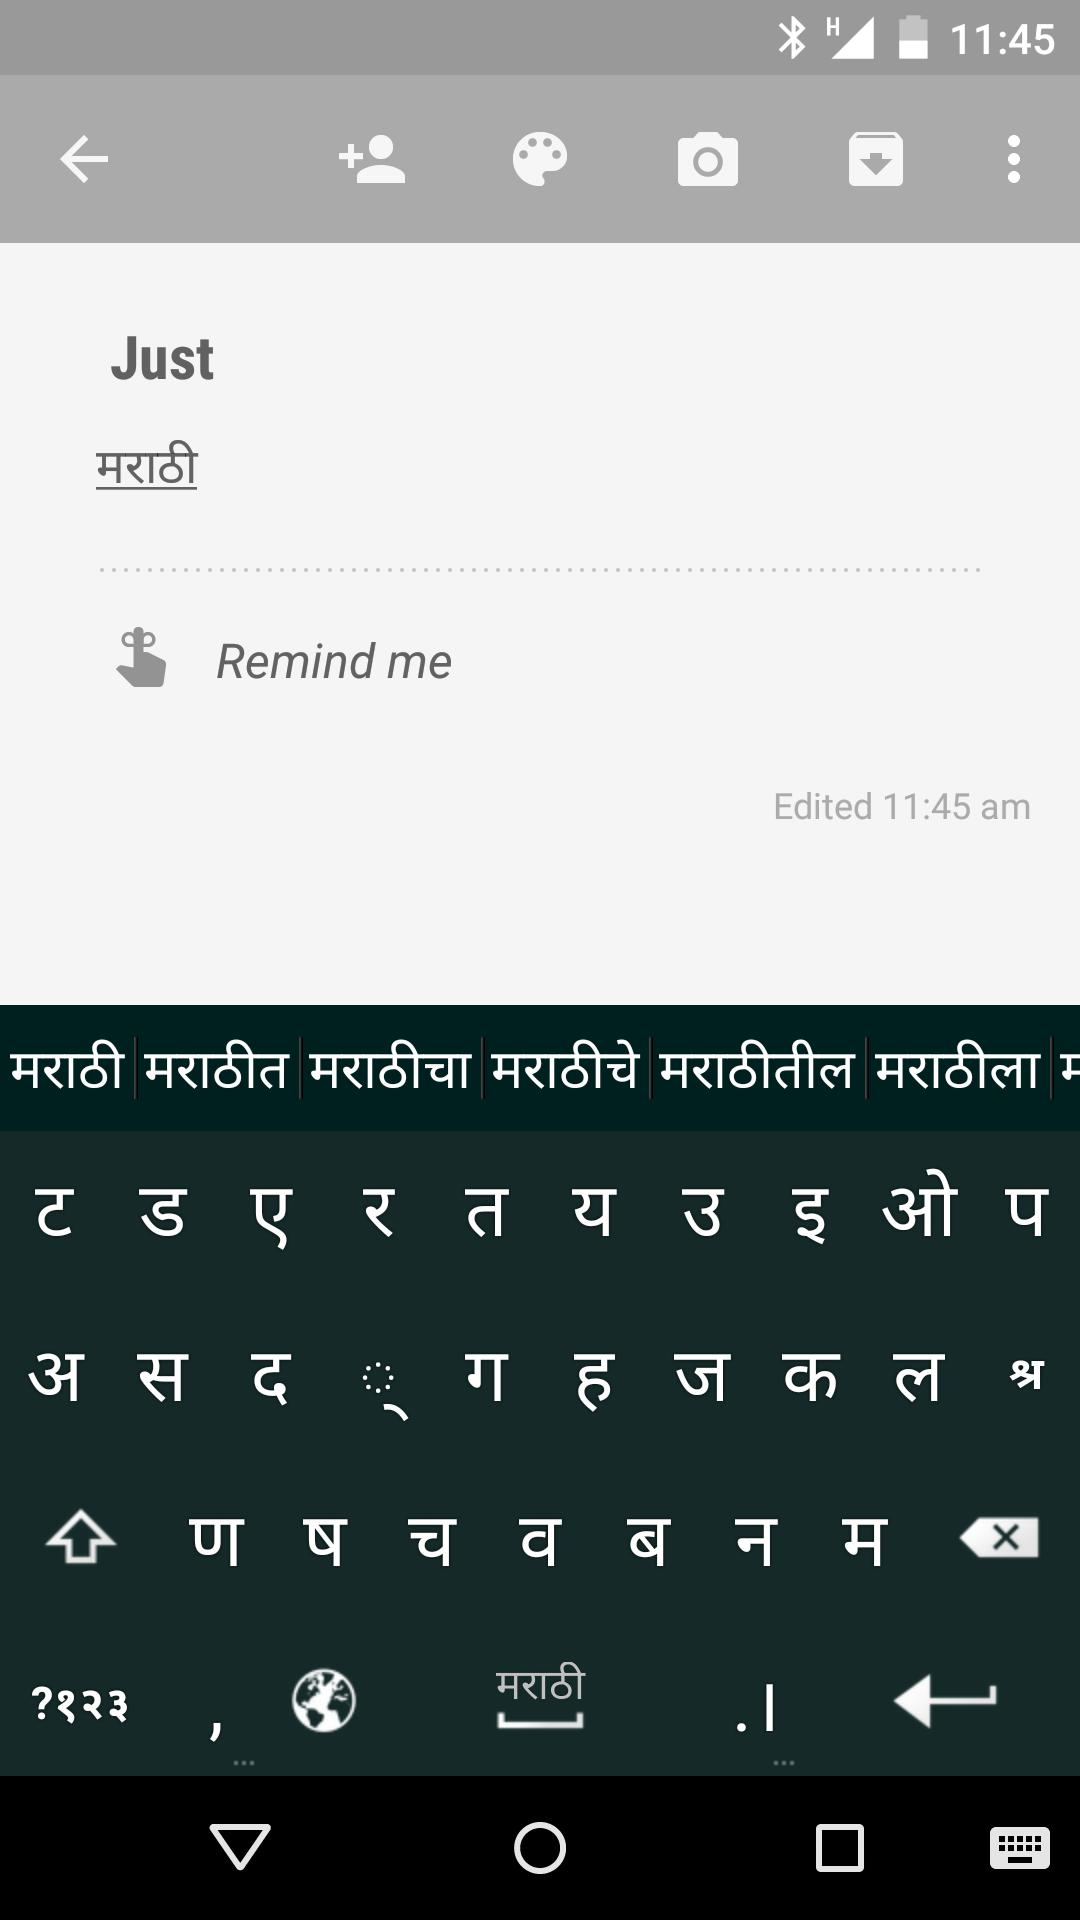 Just Marathi for Android - APK Download